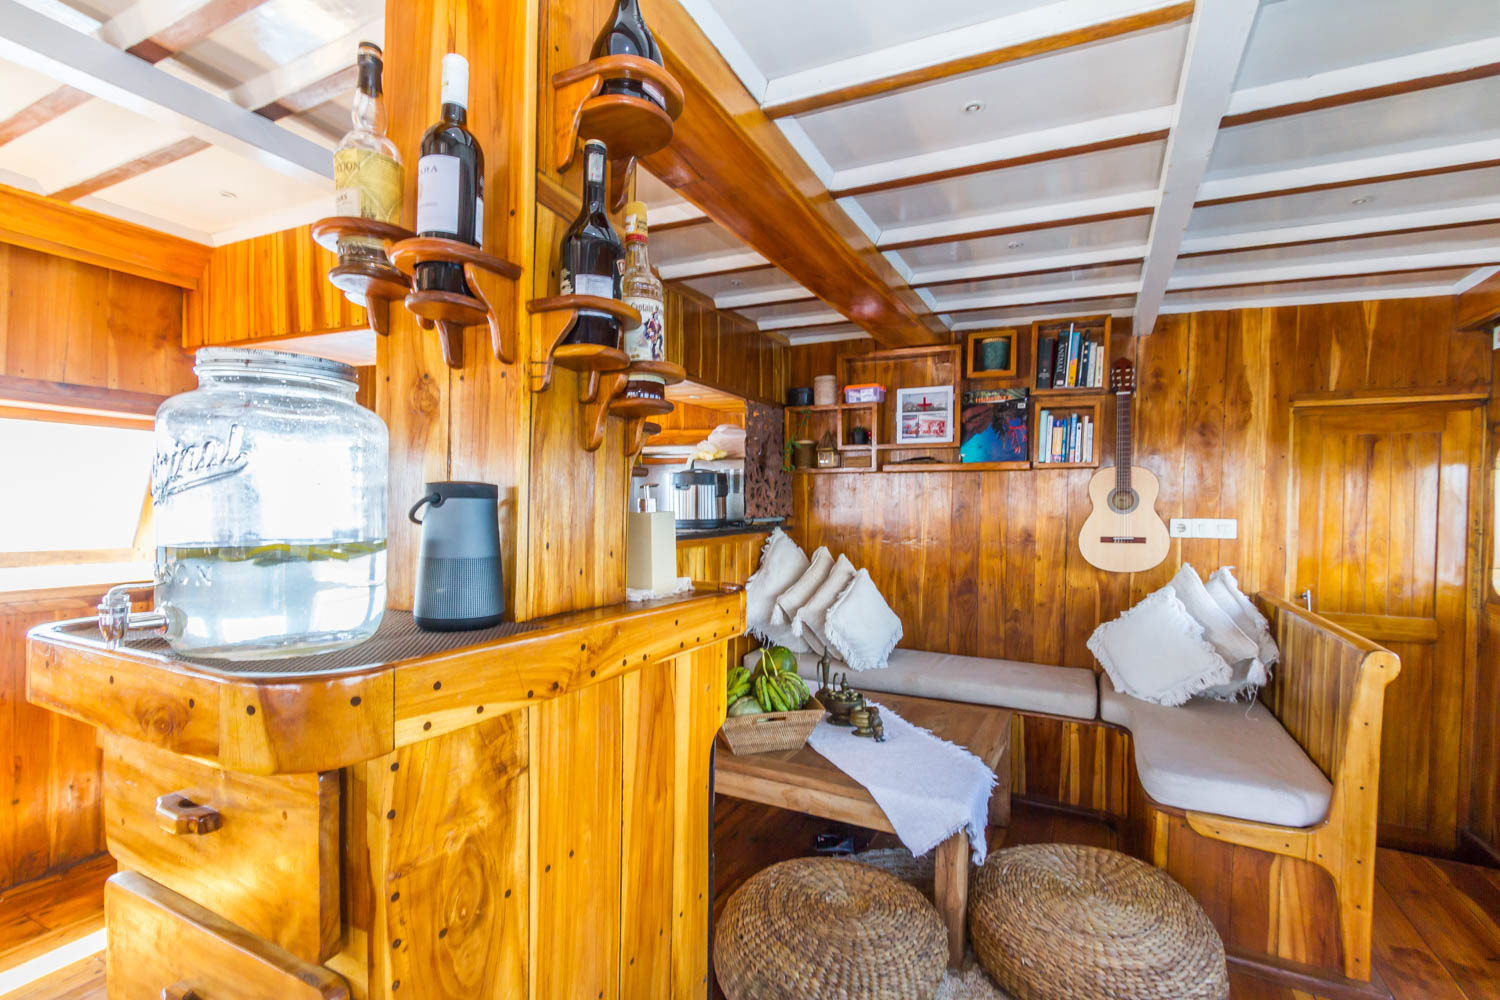 kelana_boat_cruise_living_room_wood.jpg